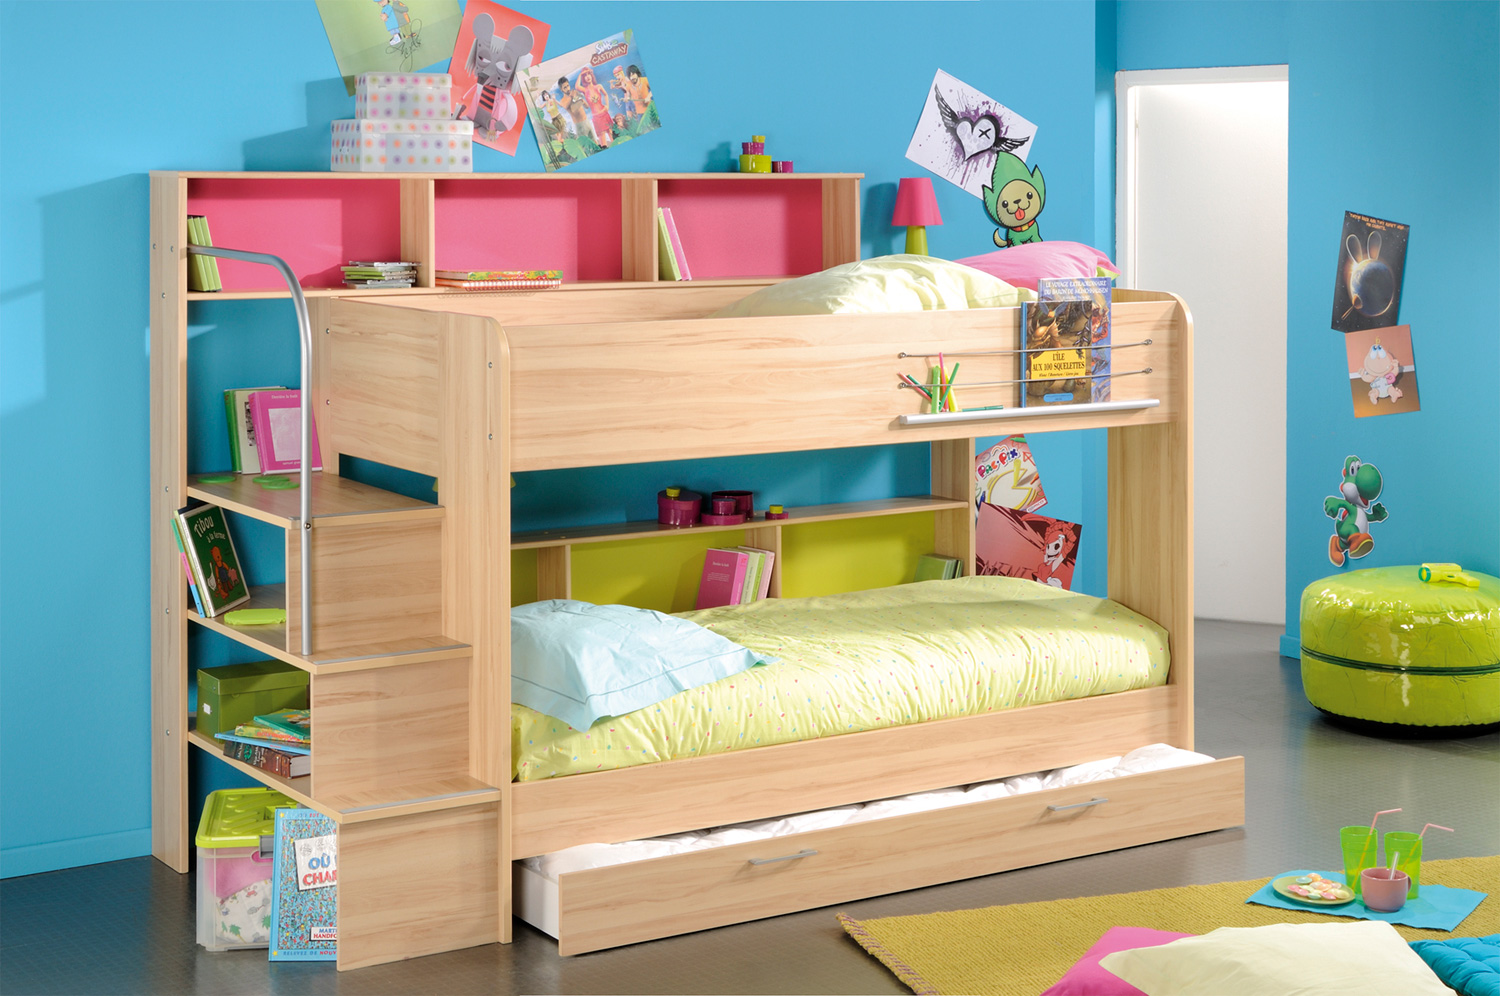 children s living room chairs round kitchen table and space saving stylish bunk beds for your home